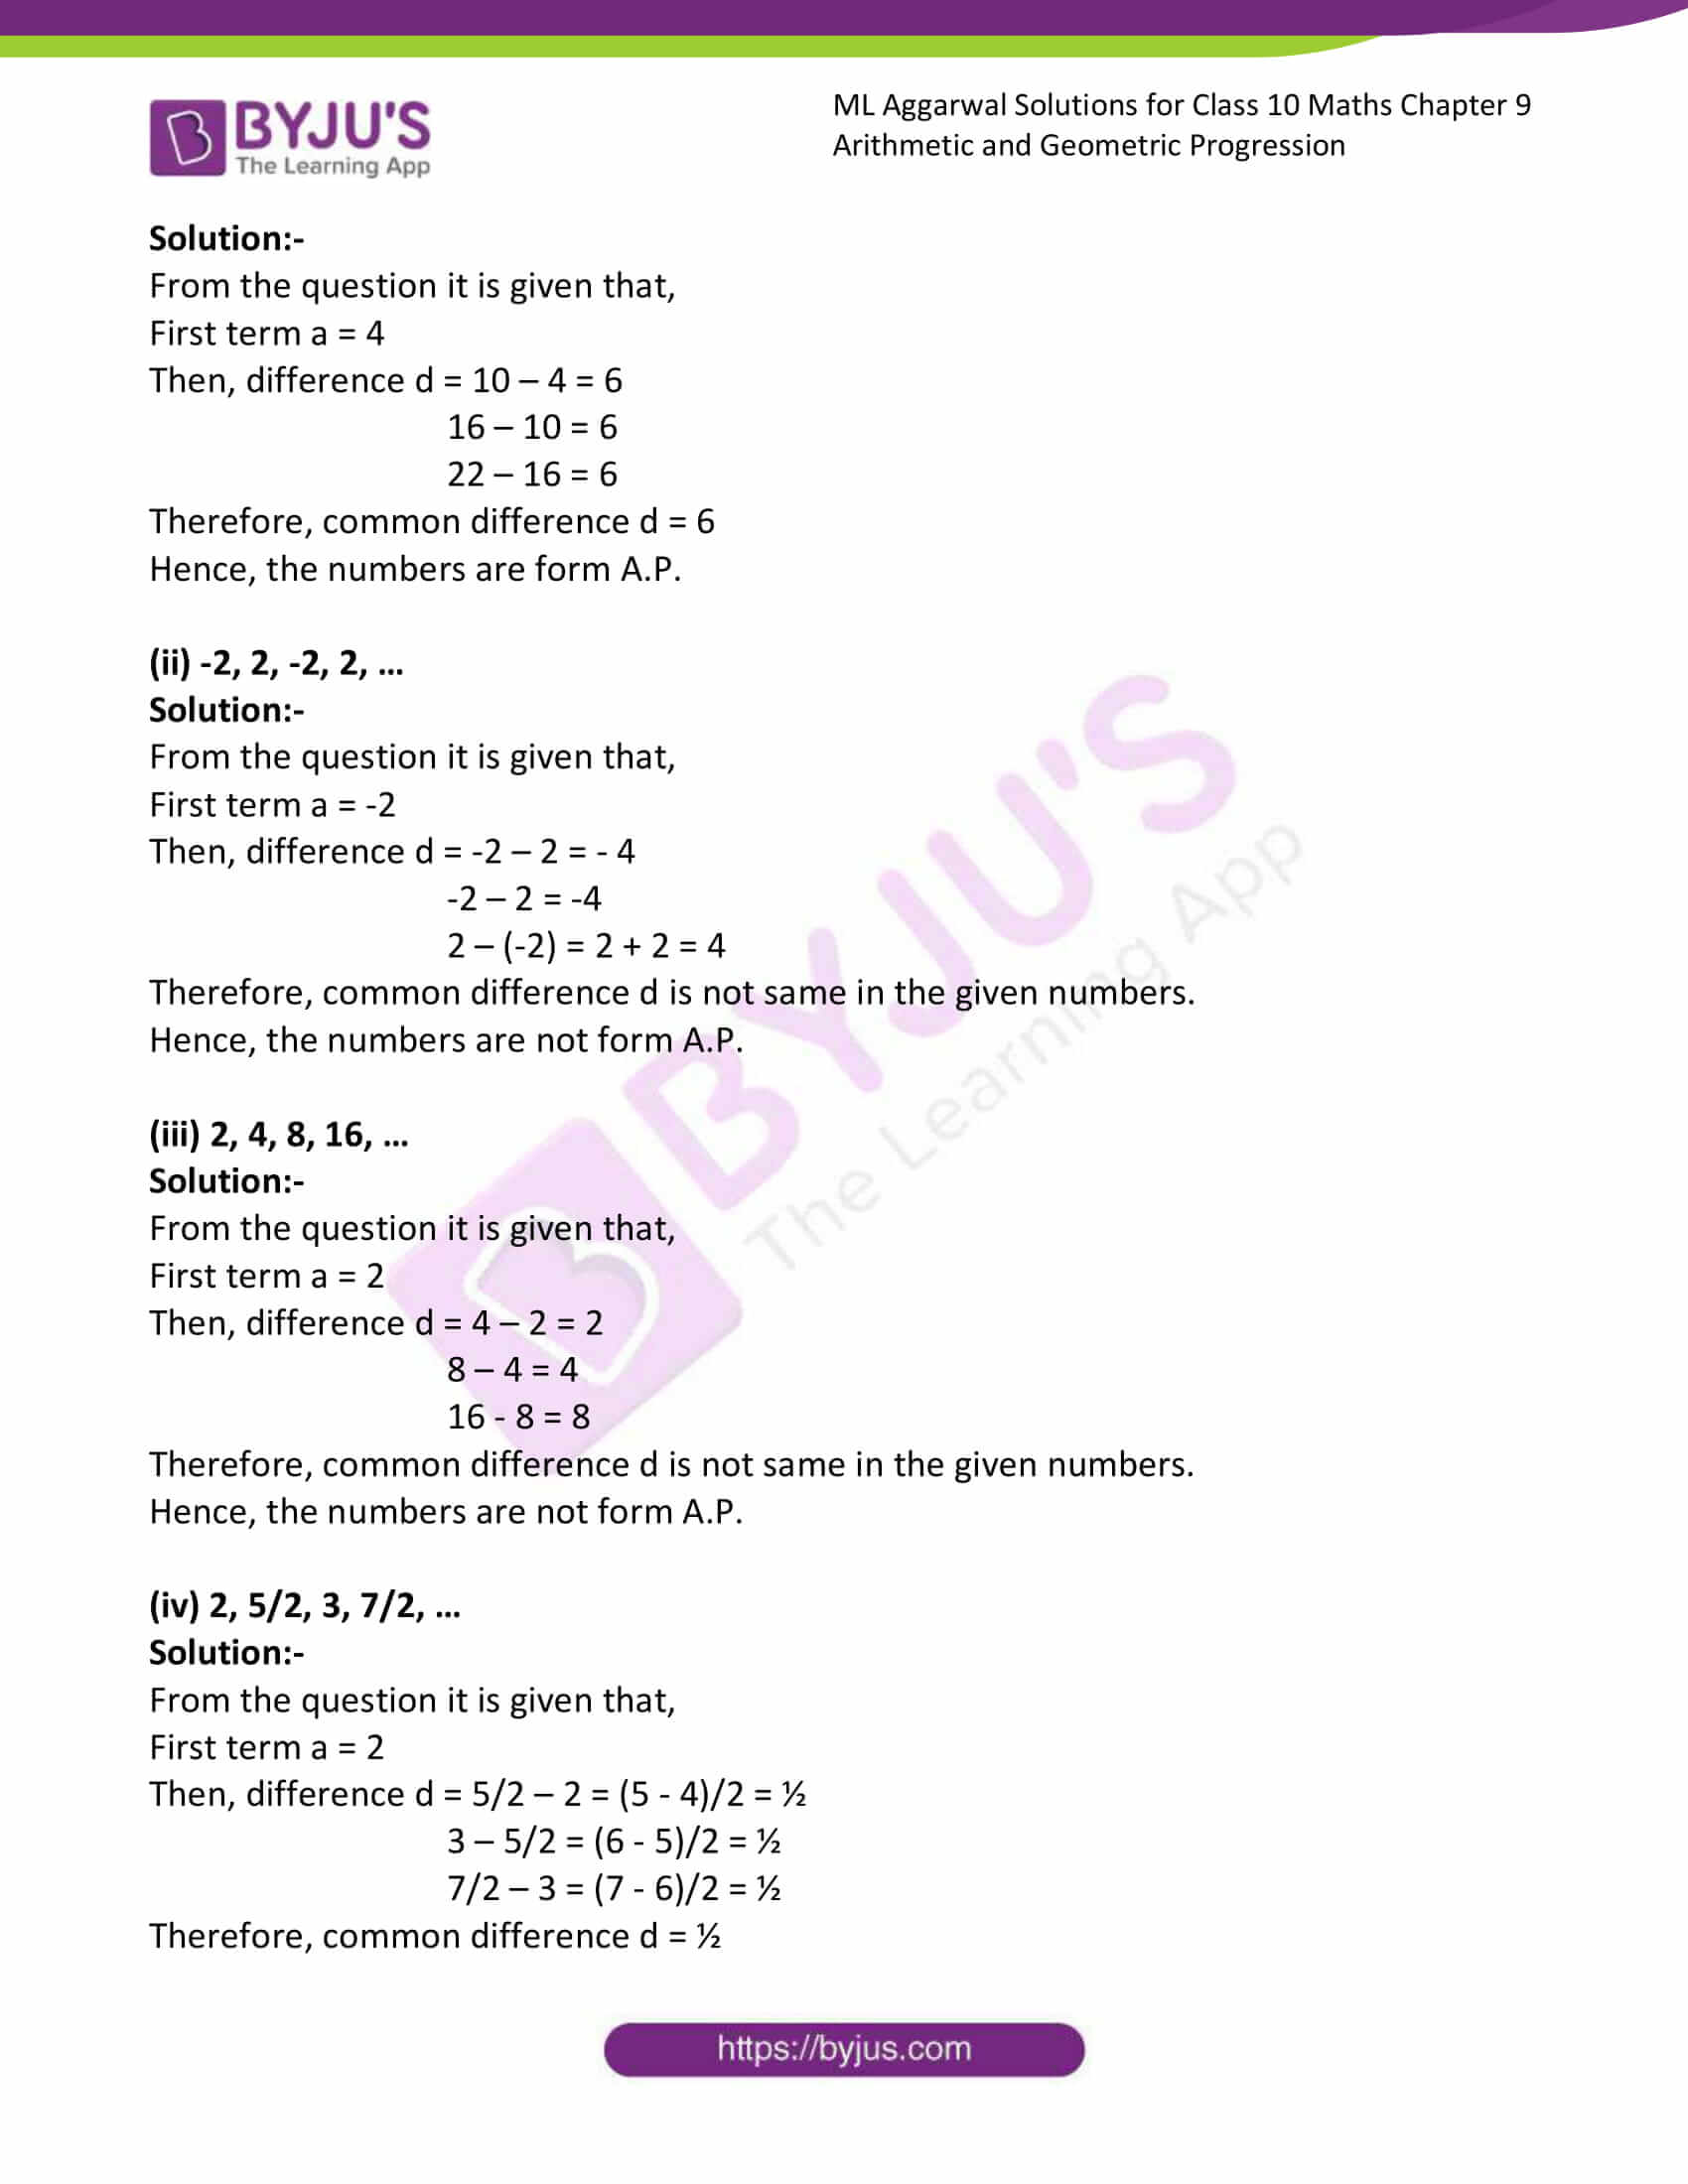 ml aggarwal solutions class 10 maths chapter 9 03